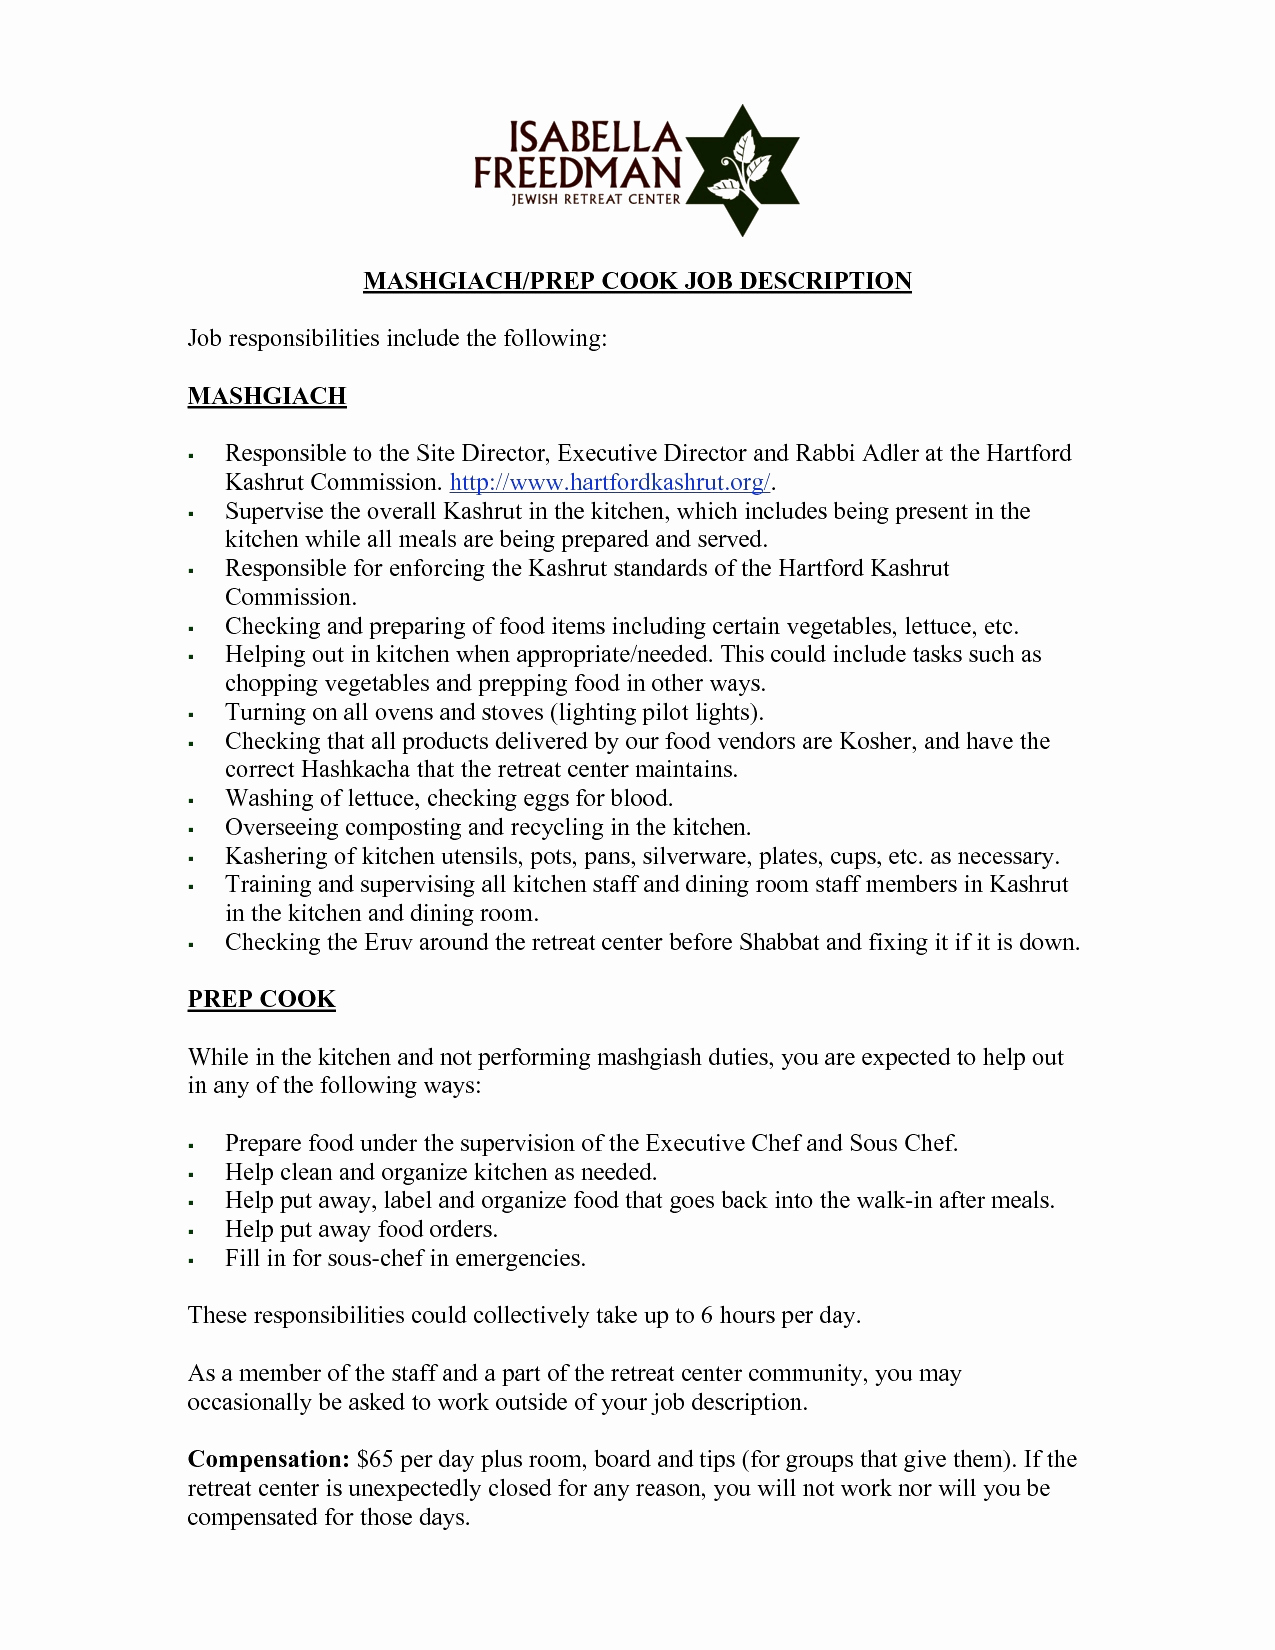 Registered Nurse Cover Letter Template - Registered Nurse Cover Letter Examples New Resume and Cover Letter